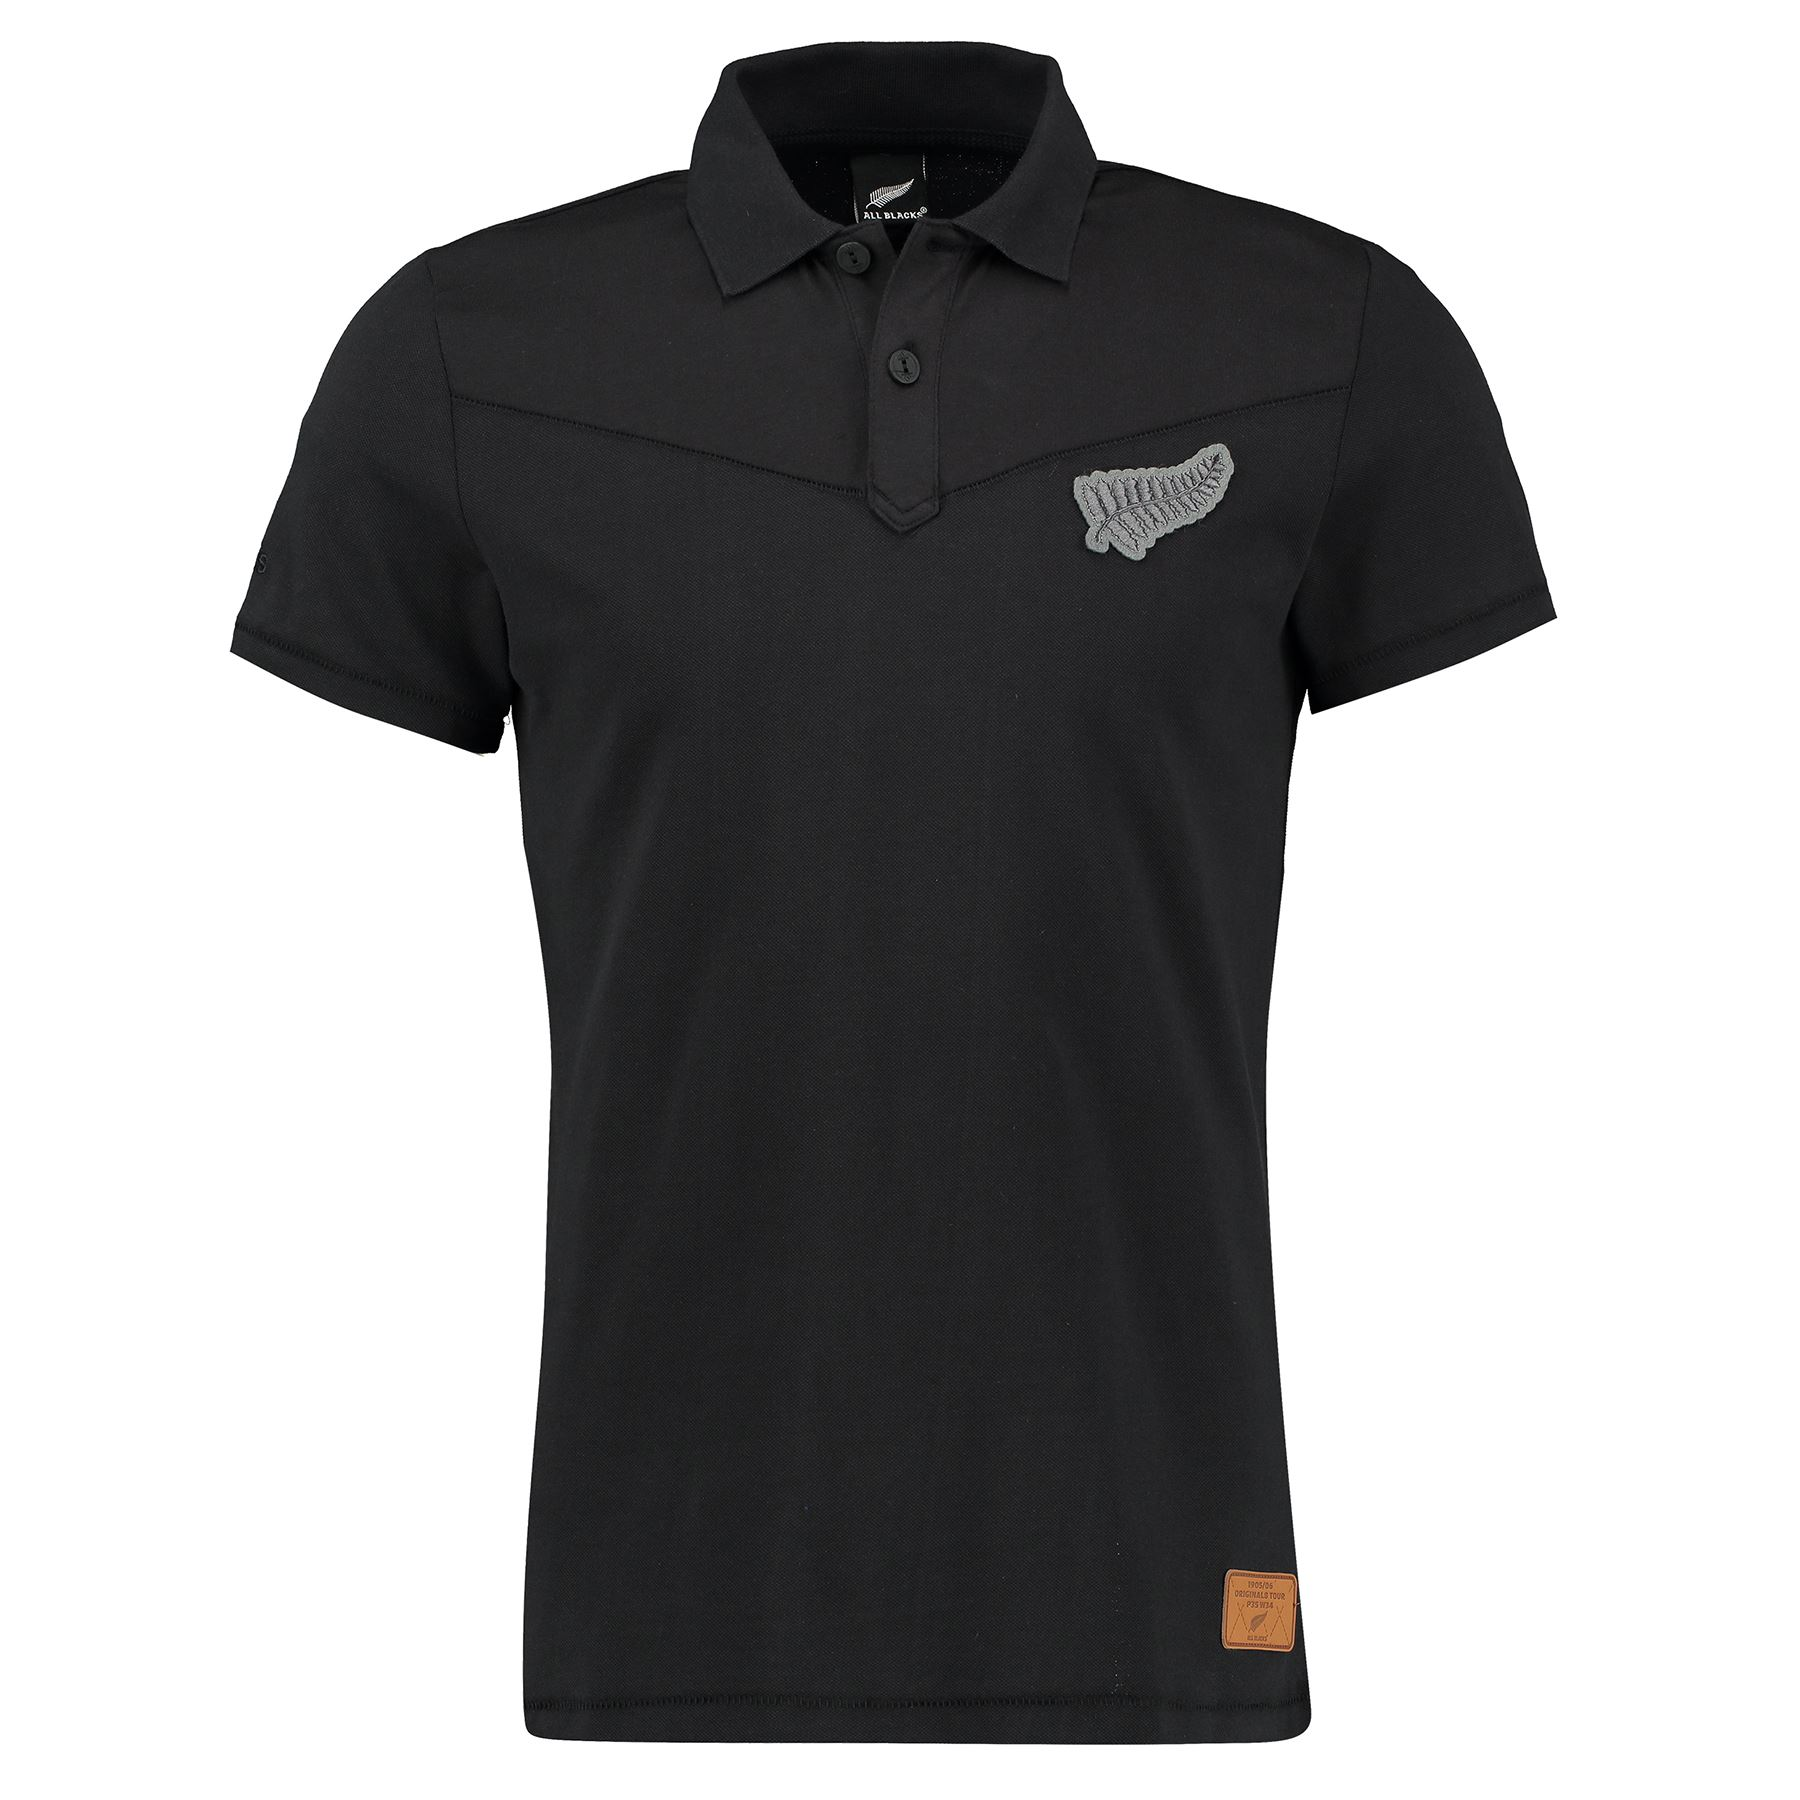 mens all blacks 16th rugby team short sleeve polo shirt black ebay. Black Bedroom Furniture Sets. Home Design Ideas